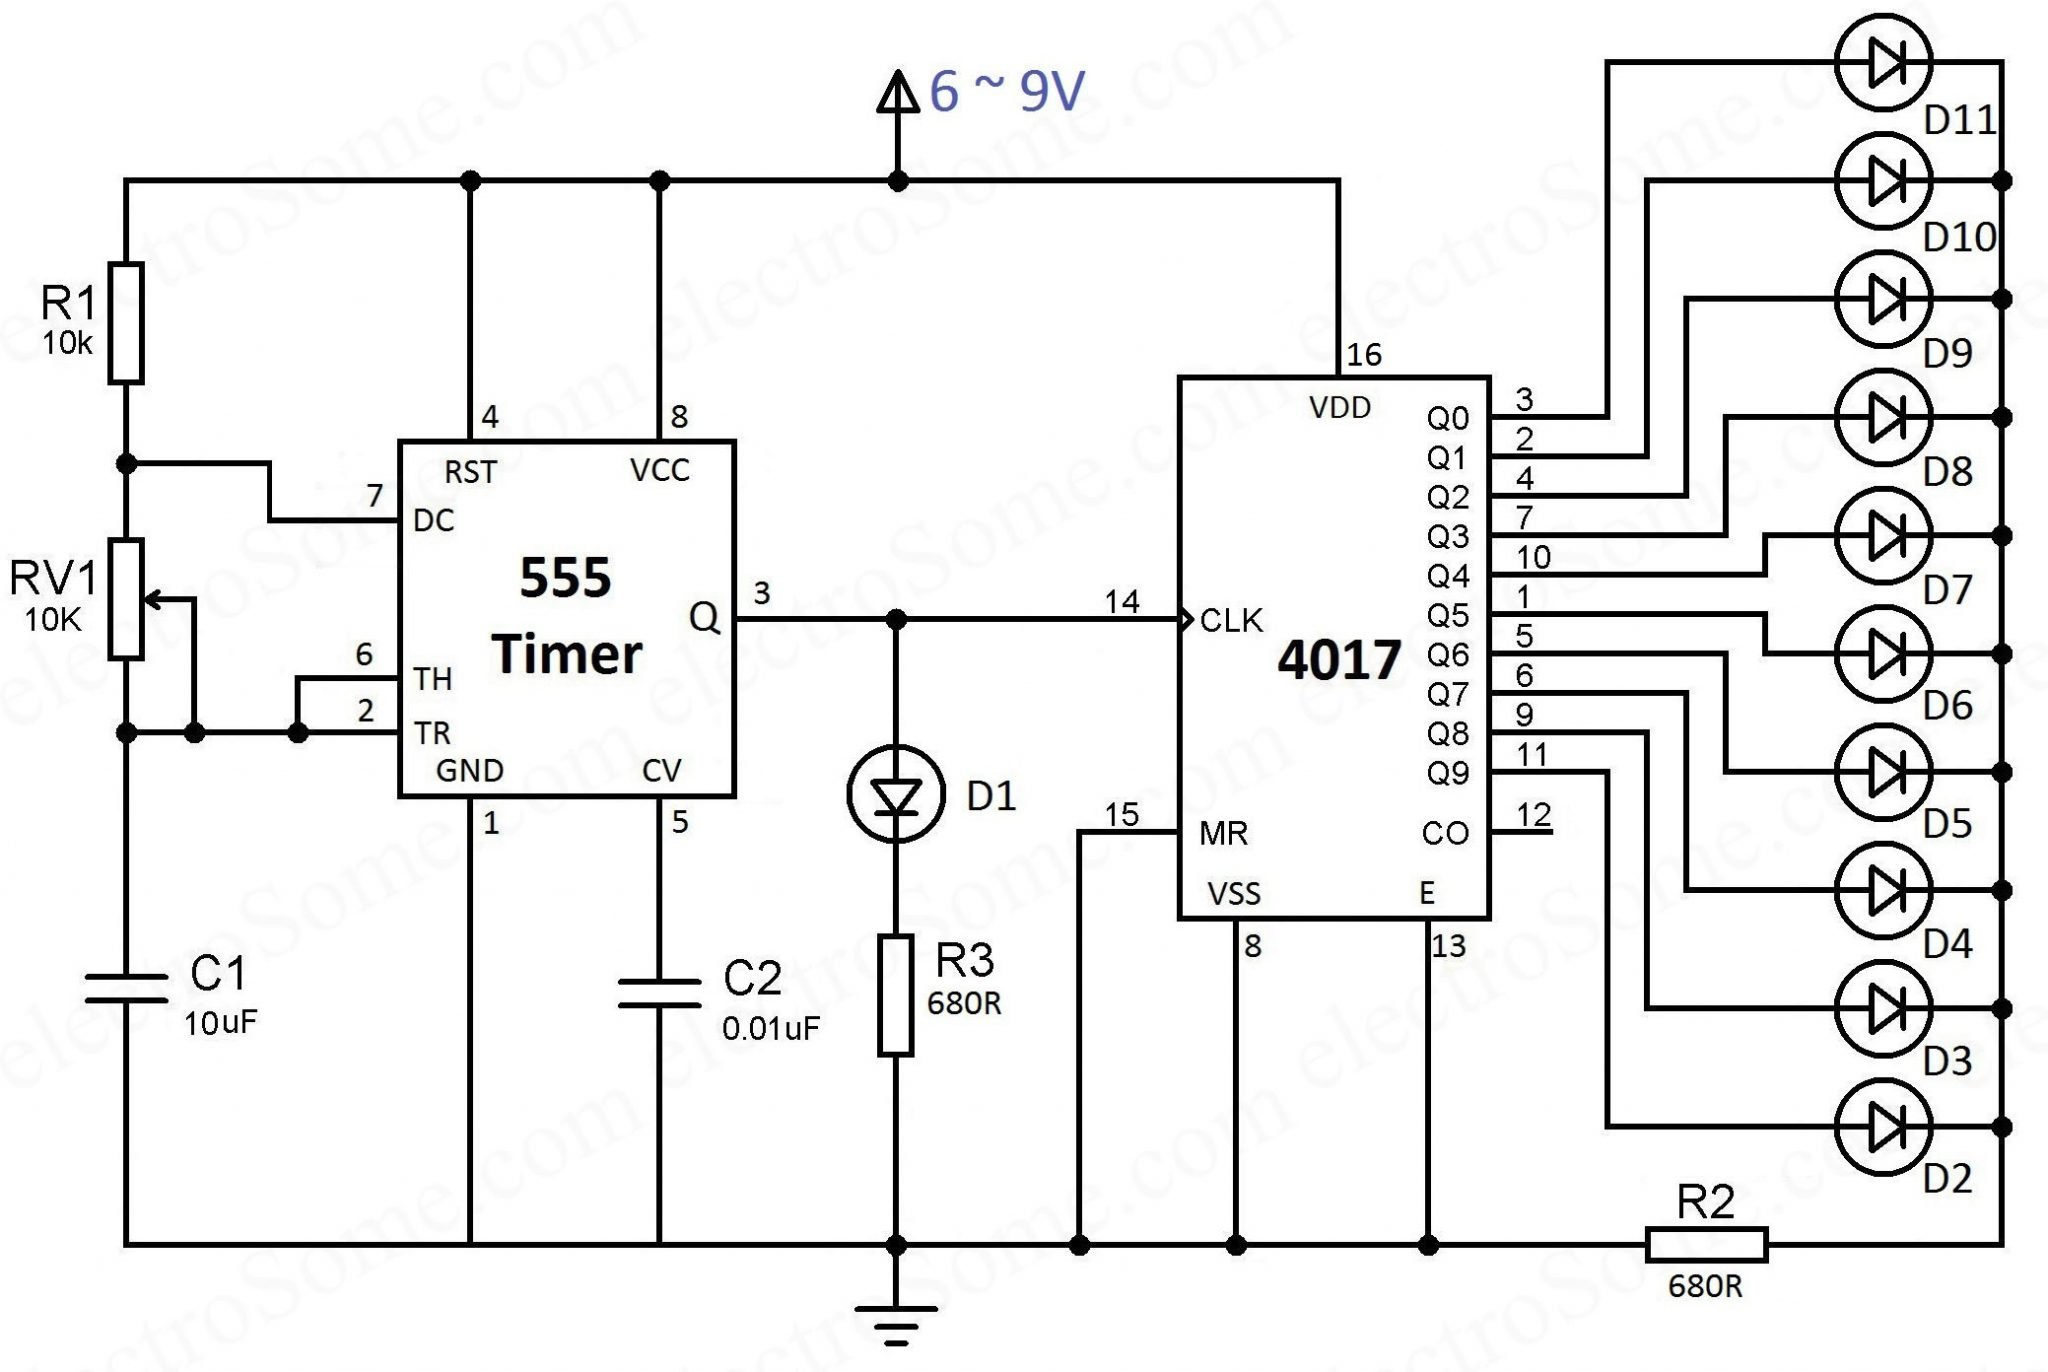 Led Chaser Using 4017 Counter And 555 Timer Sub Zero Ice Maker Wiring Diagram Circuit